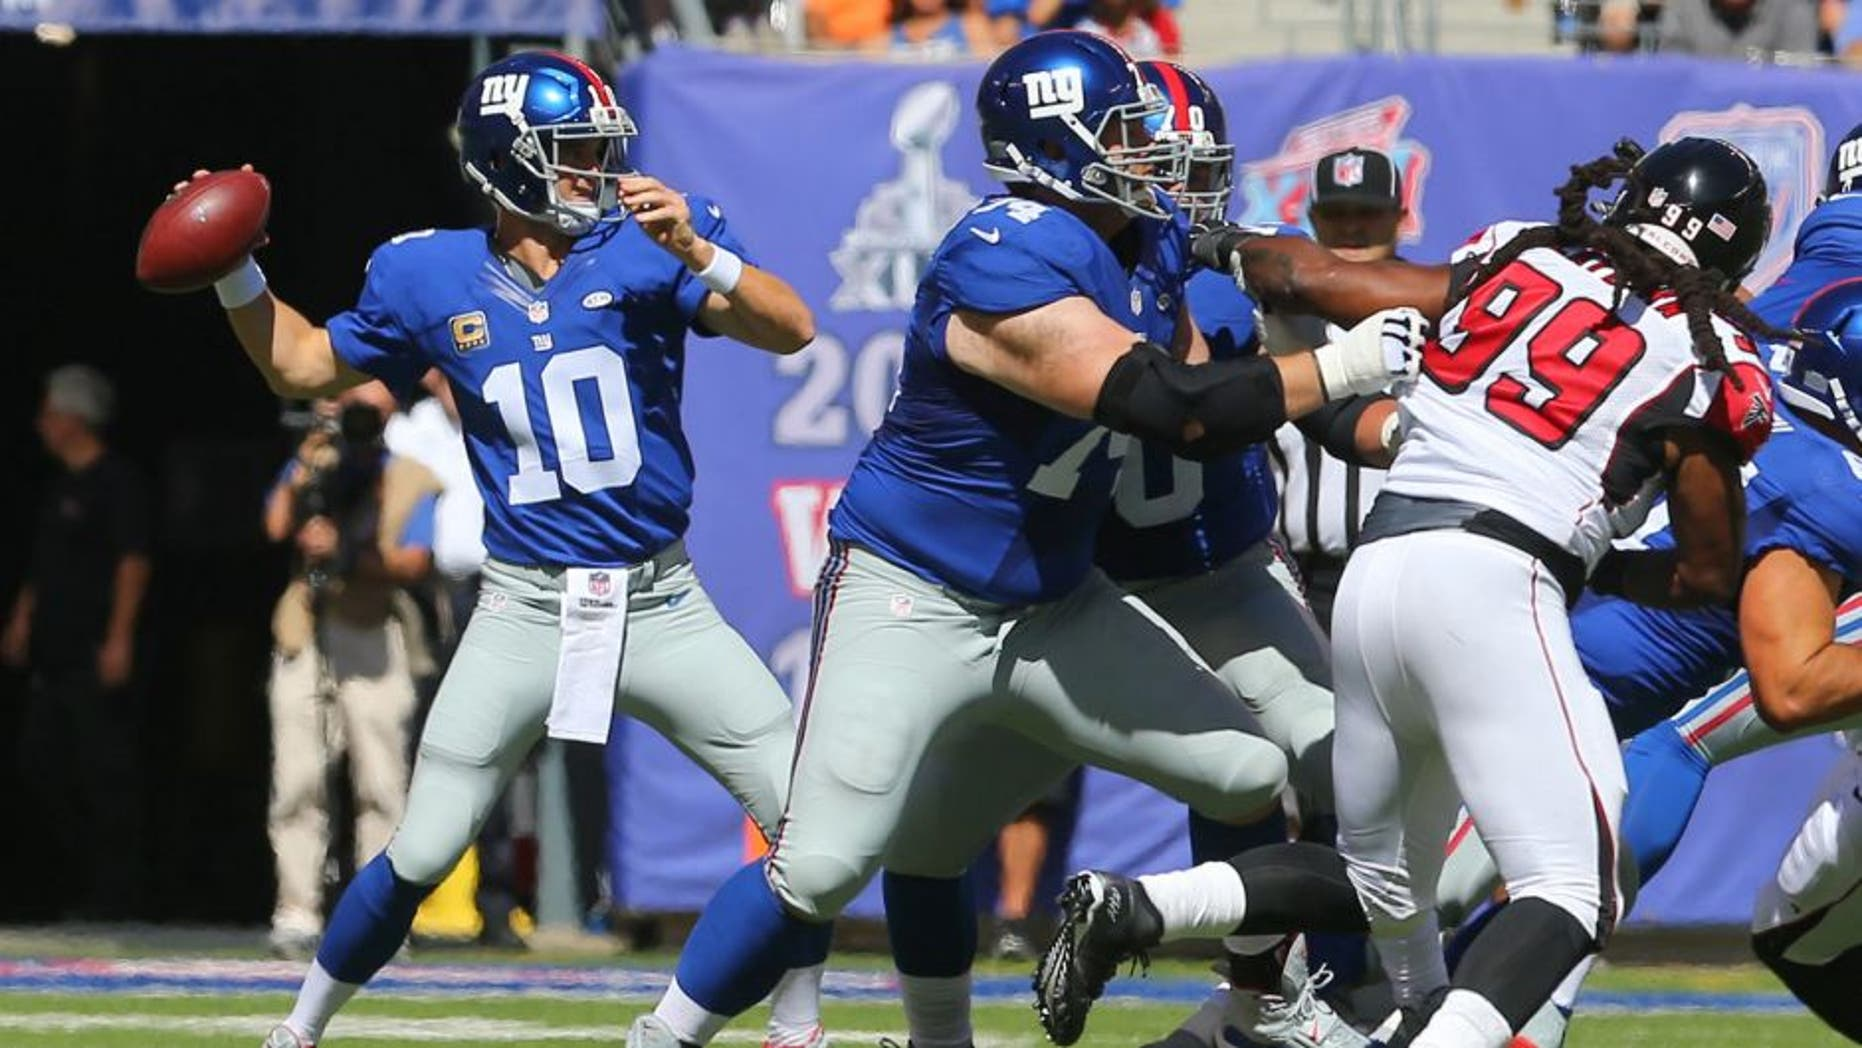 Sep 20, 2015; East Rutherford, NJ, USA; New York Giants quarterback Eli Manning (10) throws a pass during the first half of their game against the Atlanta Falcons at MetLife Stadium. Mandatory Credit: Ed Mulholland-USA TODAY Sports